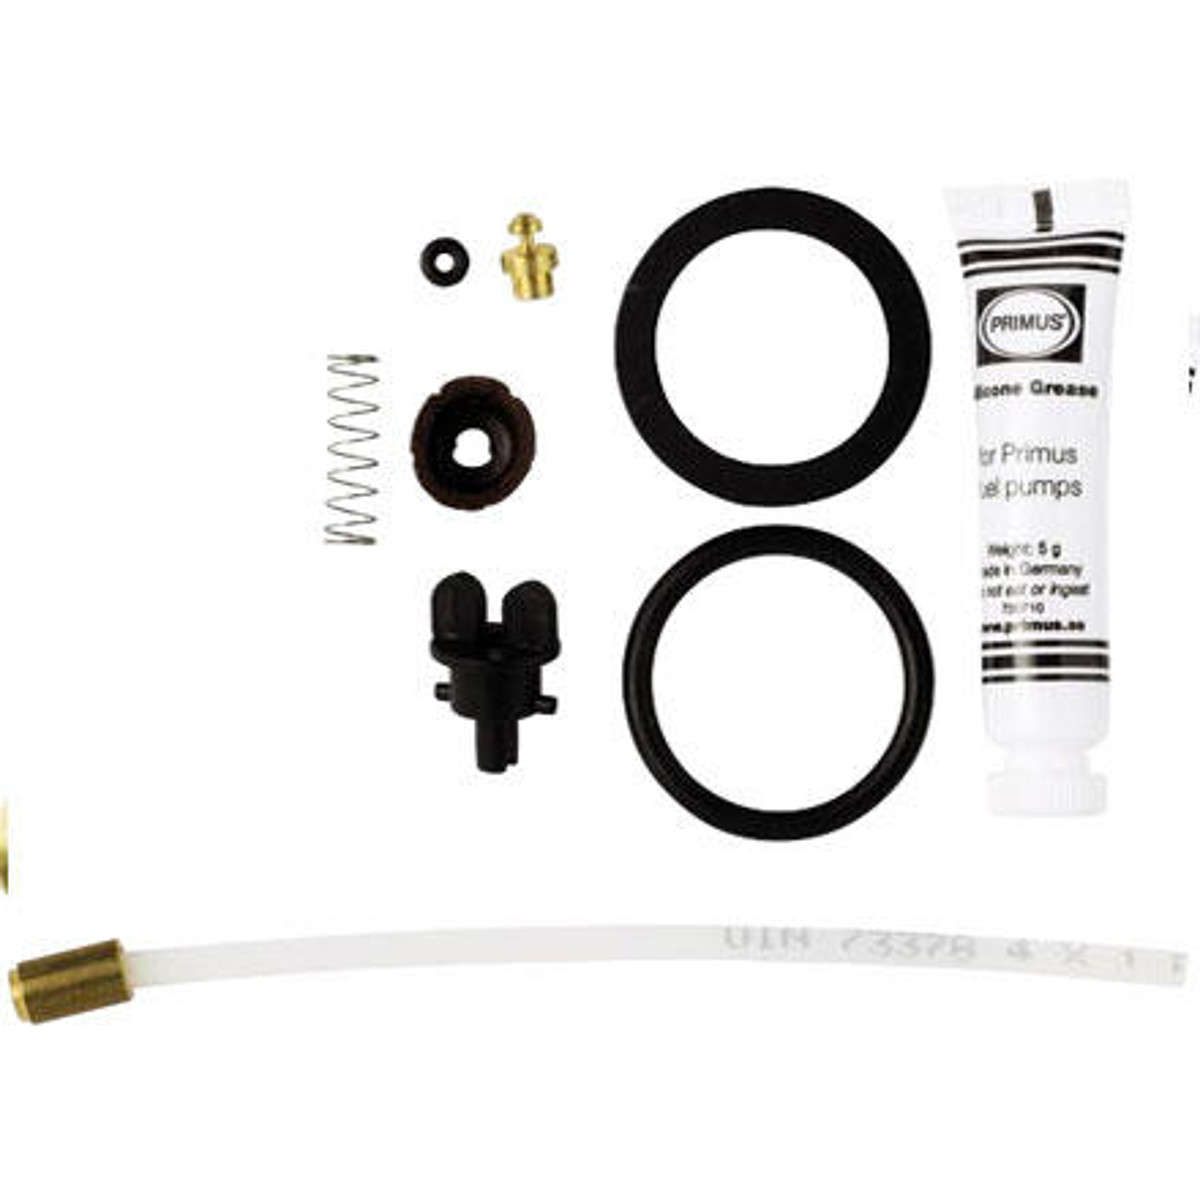 Primus Fuel Pump Maintenance Kit